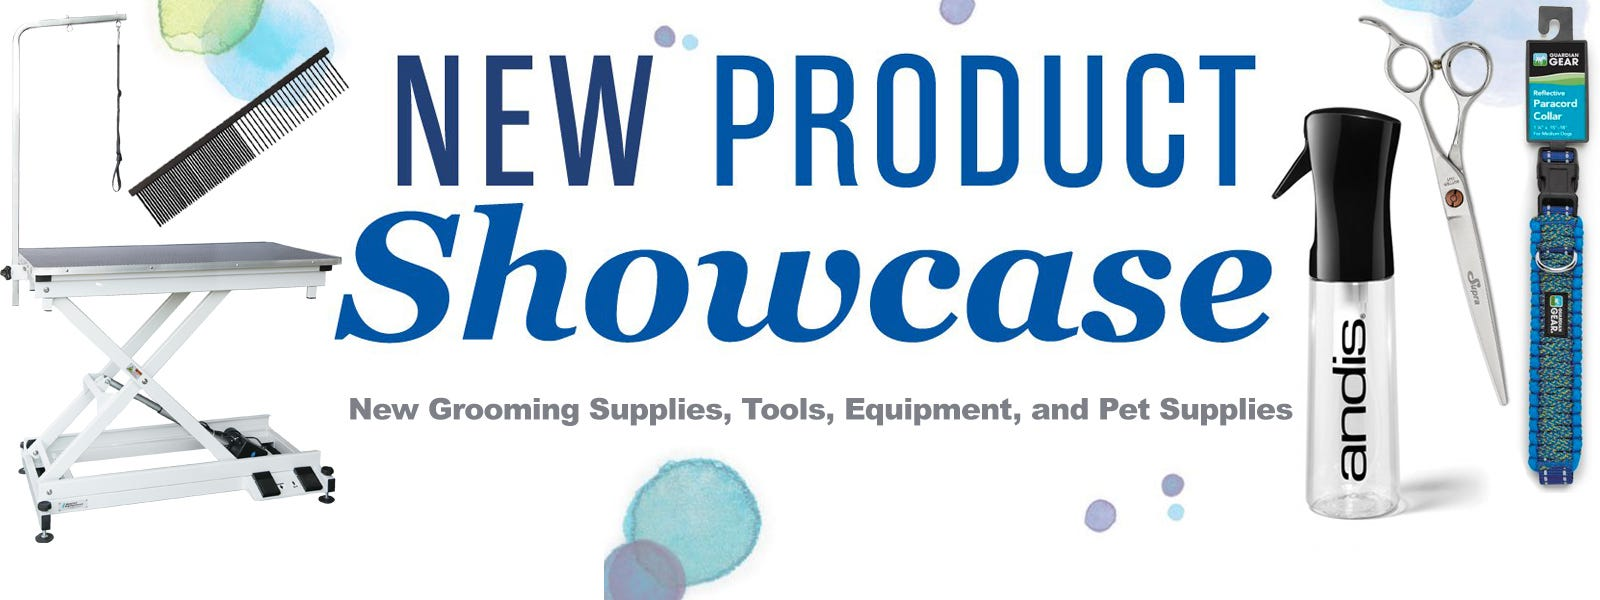 New Product Showcase all new pet and dog grooming products